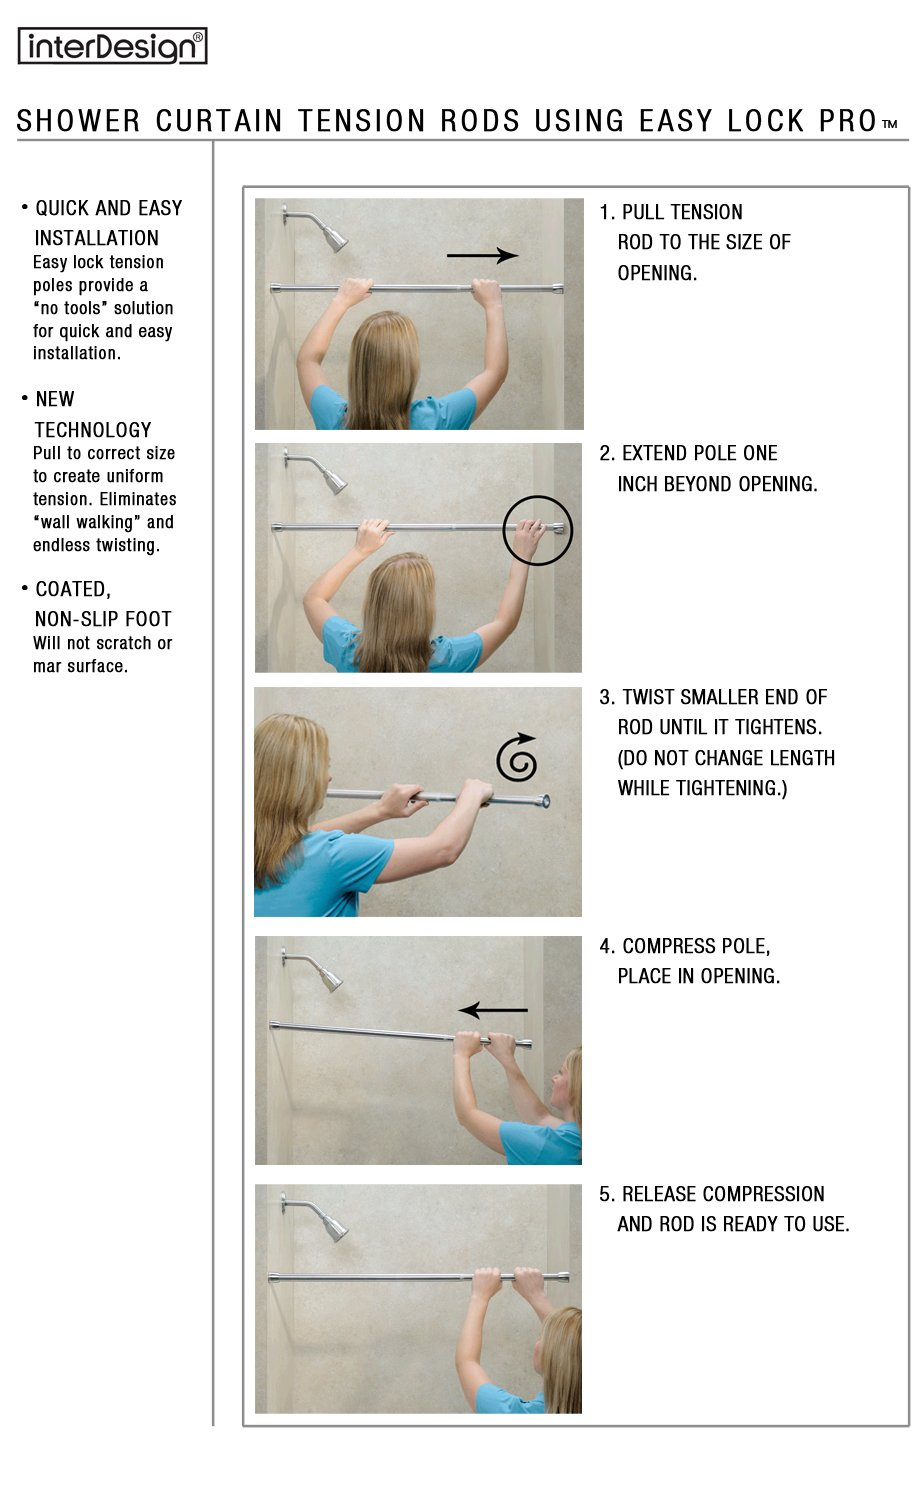 Shower Curtain Tension Rods . . . Reliable At Every Length